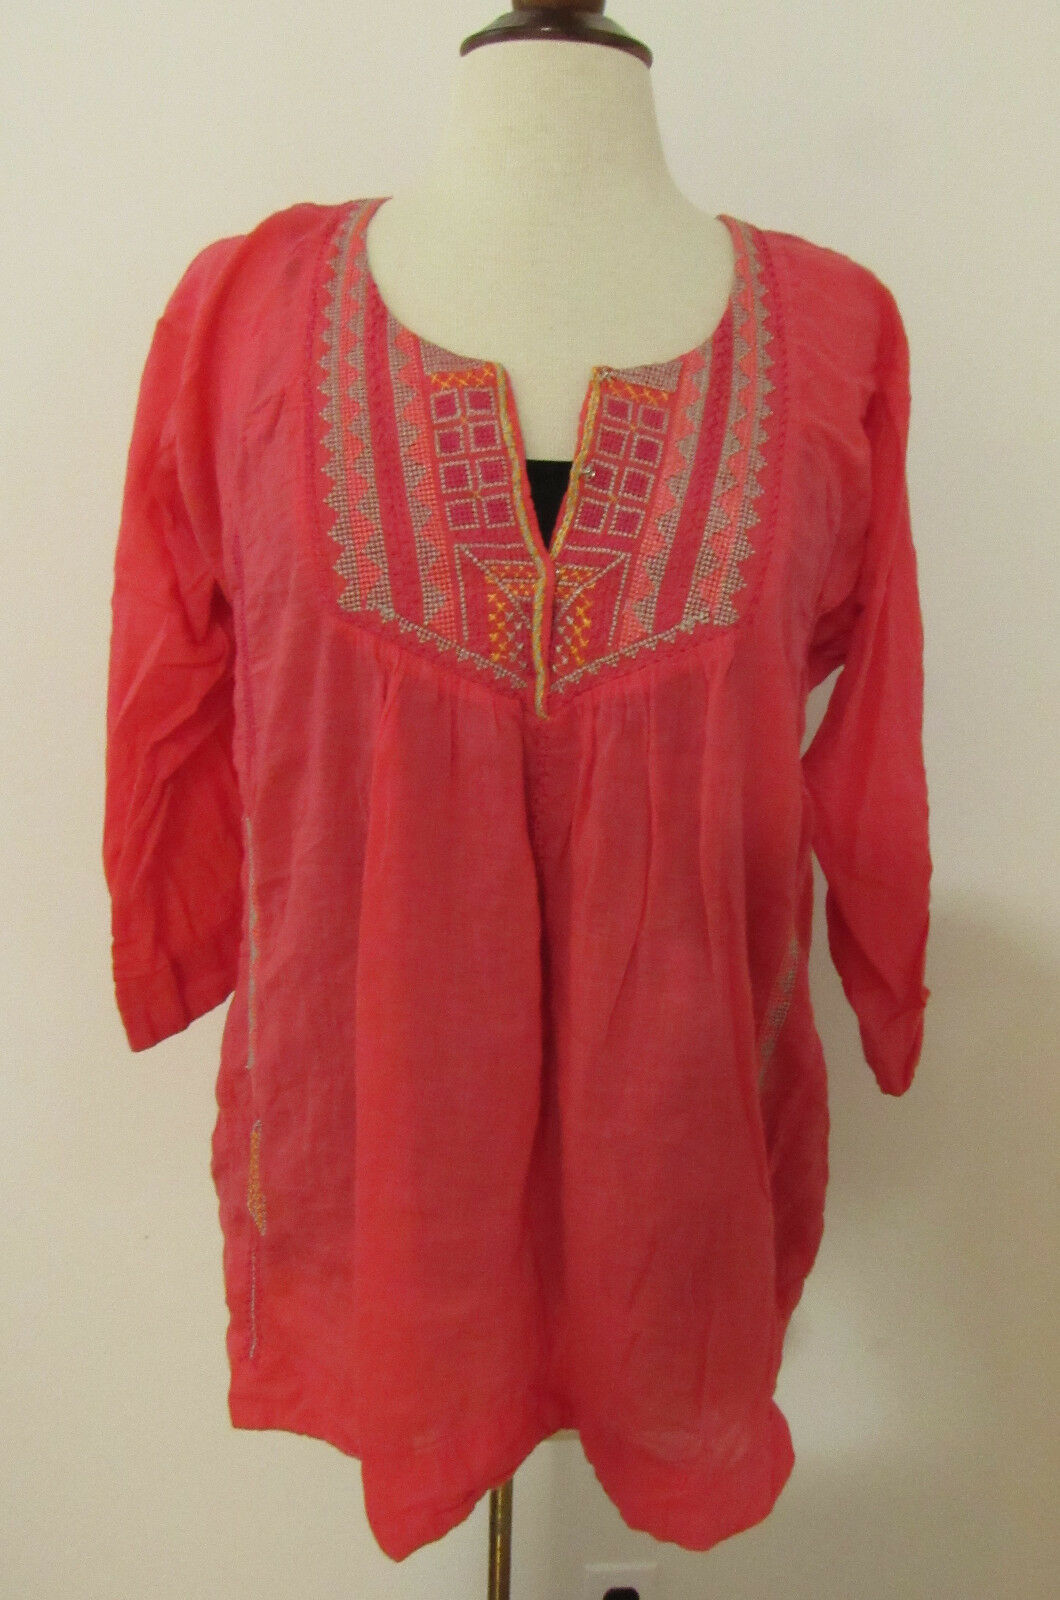 damen JOHNNY WAS BIYA Coral Embroiderot Boho Blouse Tunic Top  Small (D20)